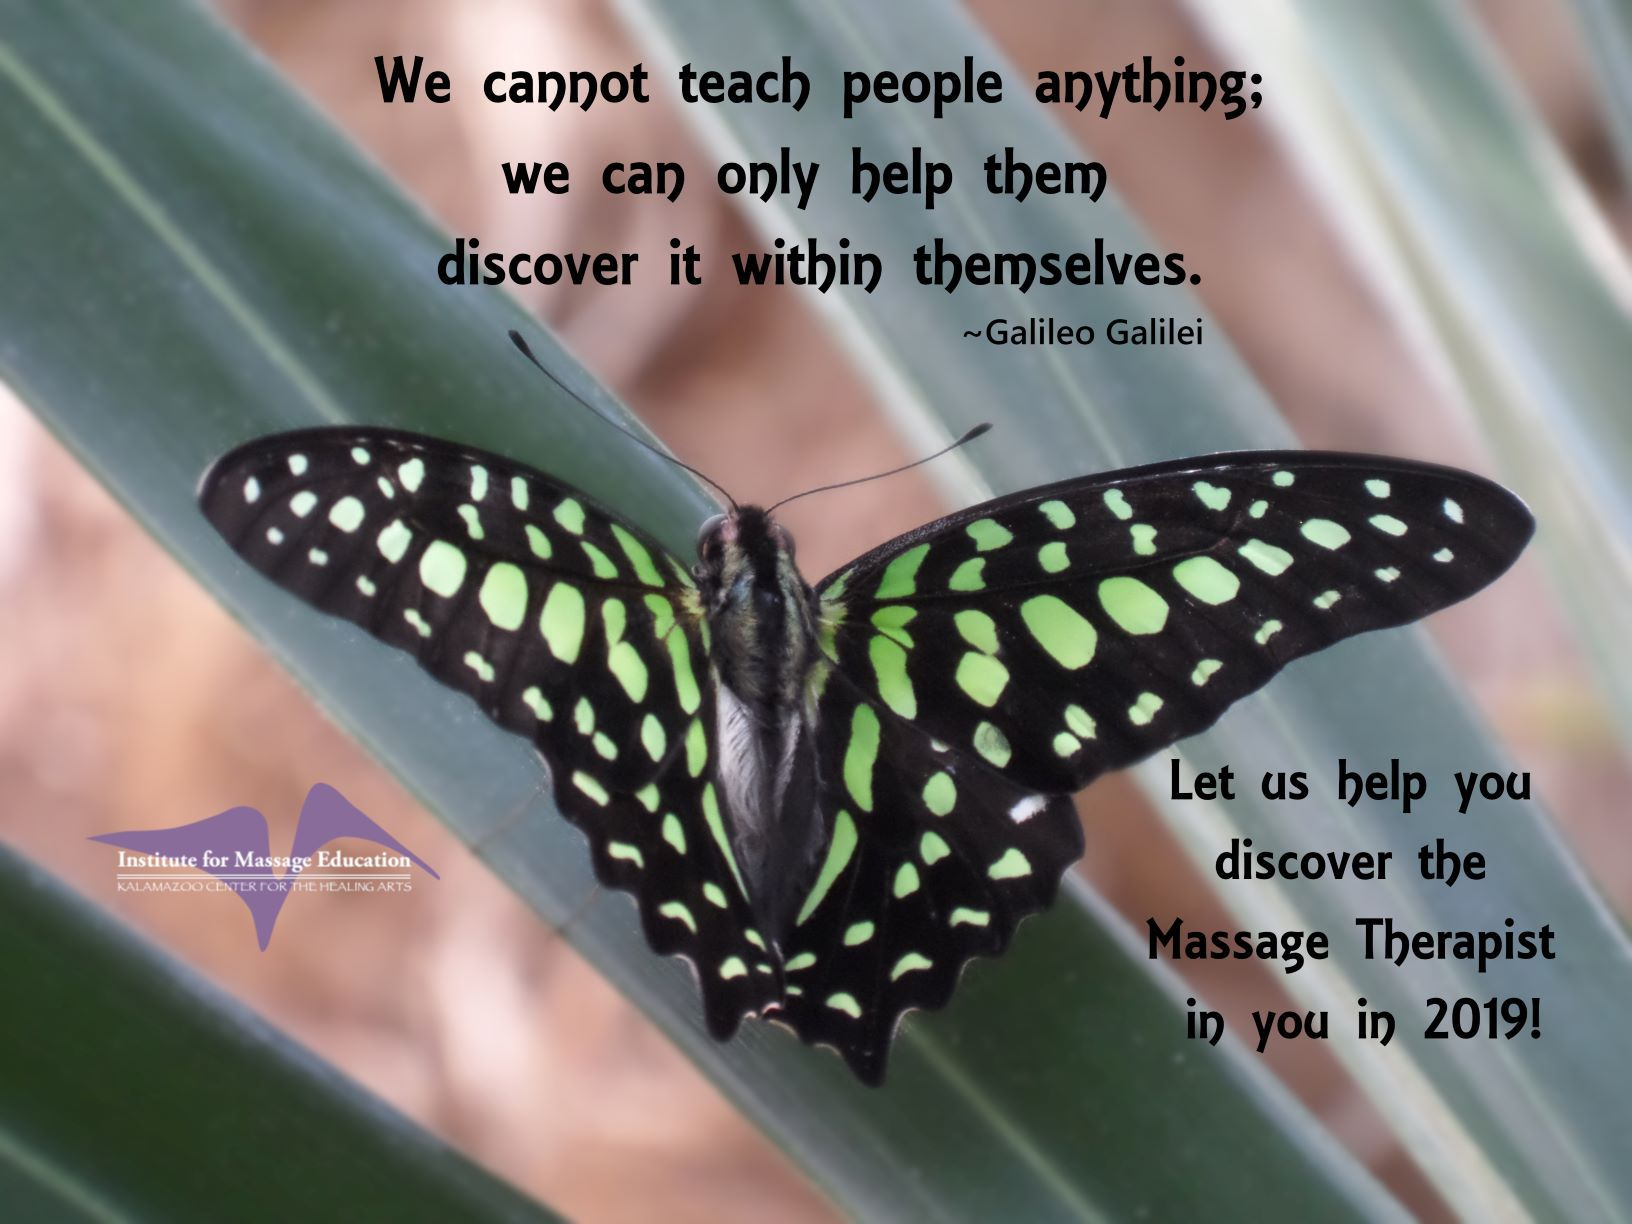 We cannot teach people anything; we can only help them